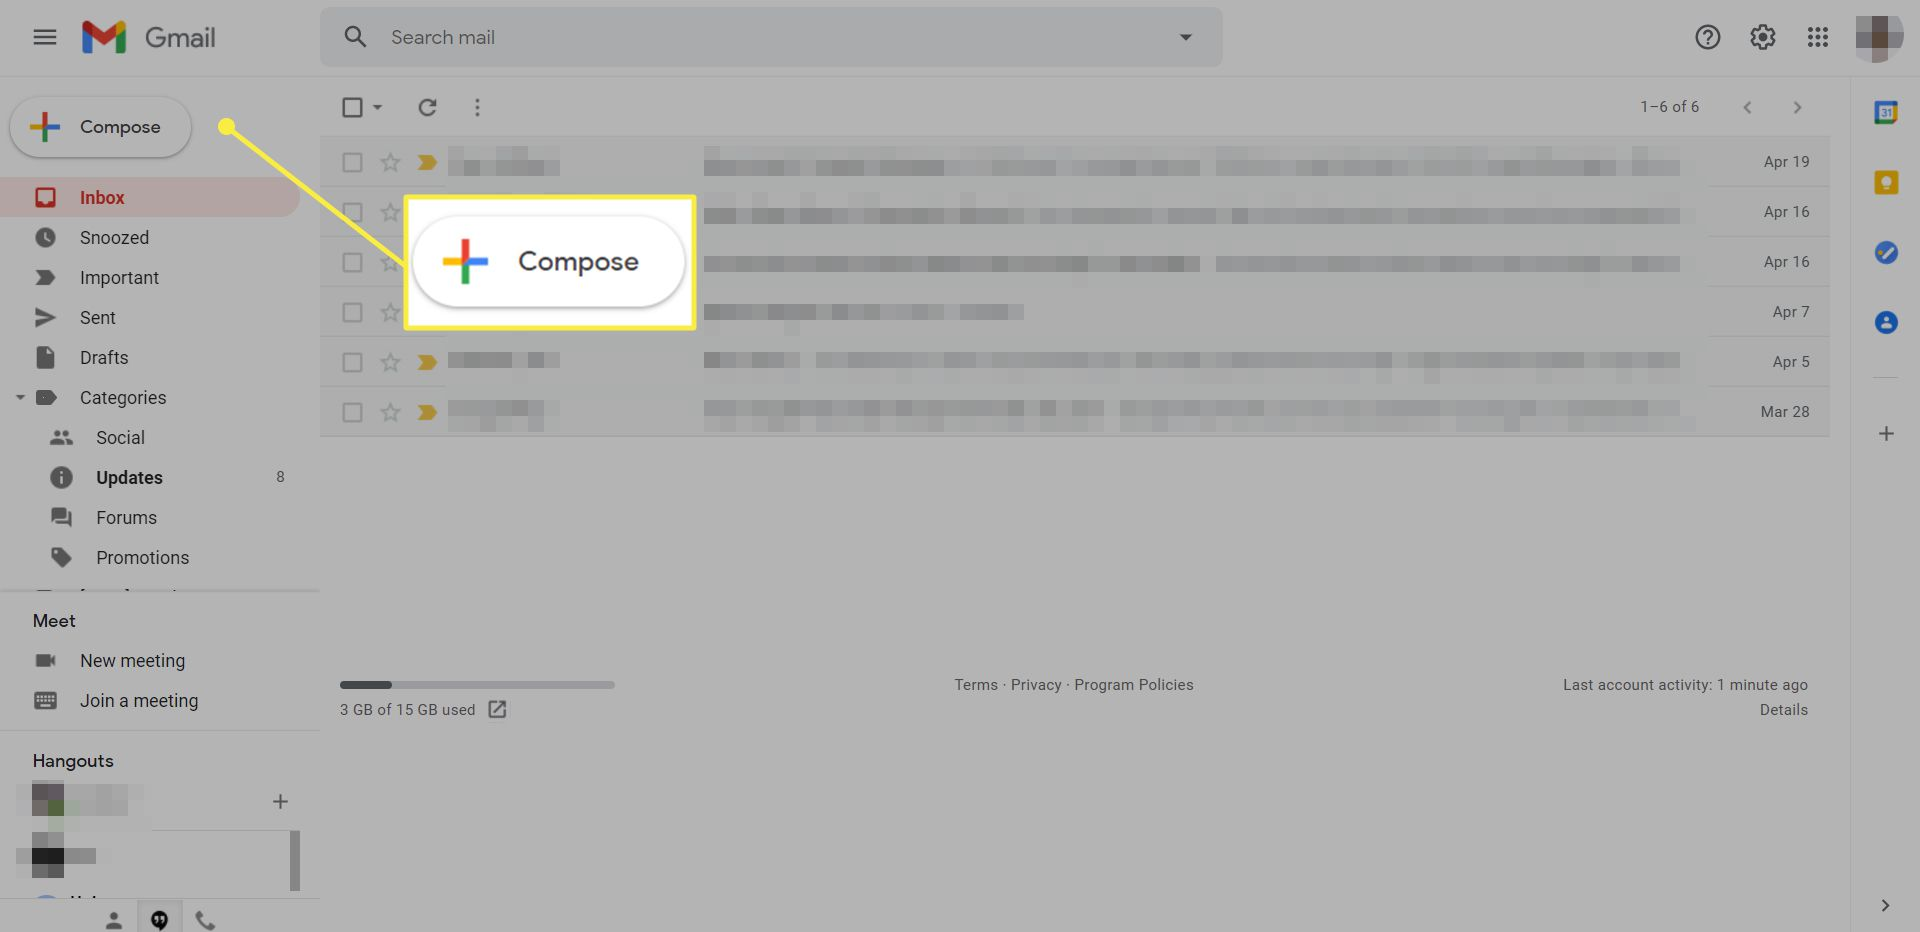 A Gmail inbox with the Compose icon highlighted